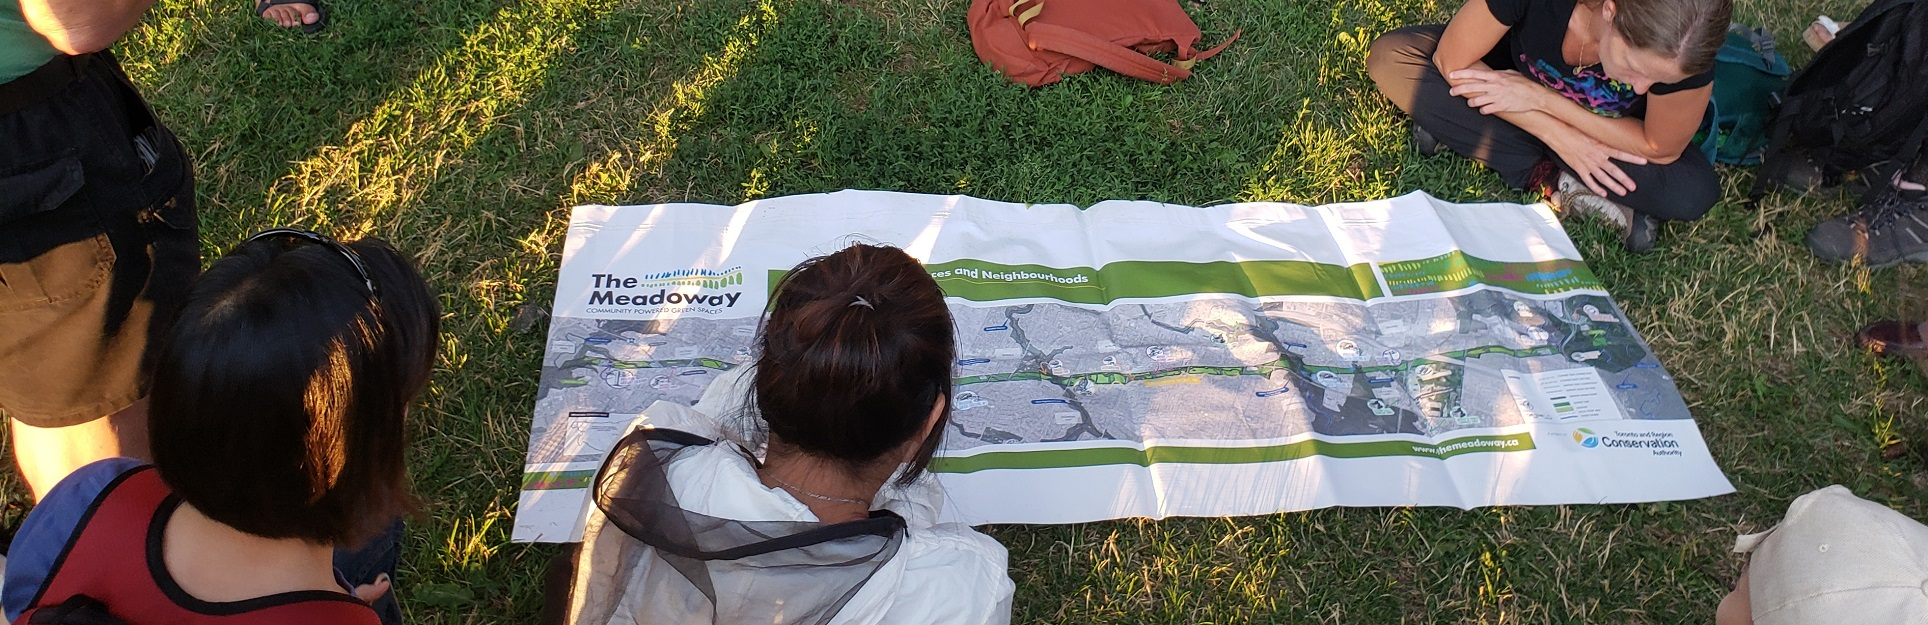 members of public examine map of The Meadoway at community learning event